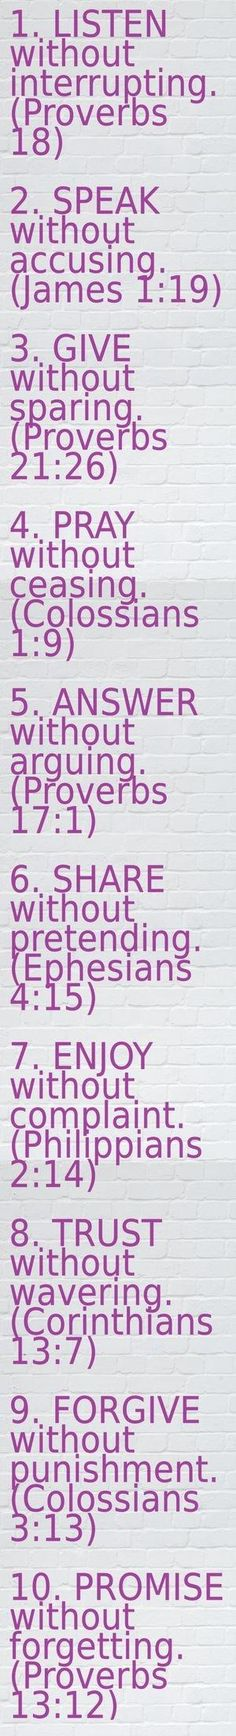 By Proverbsway. Love is..1. LISTEN without interrupting. (Proverbs 18) 2. SPEAK without accusing. (James 1:19) 3. GIVE without sparing. (Proverbs 21:26) 4. PRAY without ceasing. (Colossians 1:9) 5. ANSWER without arguing. (Proverbs 17:1) 6. SHARE without pretending. (Ephesians 4:15) 7. ENJOY without complaint. (Philippians 2:14) 8. TRUST without wavering. (Corinthians 13:7) 9. FORGIVE without punishment. (Colossians 3:13) 10. PROMISE without forgetting. (Proverbs 13:12) by AubergineDreams Philippians 2, Ephesians 4, Proverbs 21, Proverbs Bible Quotes, Pray Without Ceasing, Farm Family, Family Rules, Relationship Bible Verses, 1 Corinthians 7